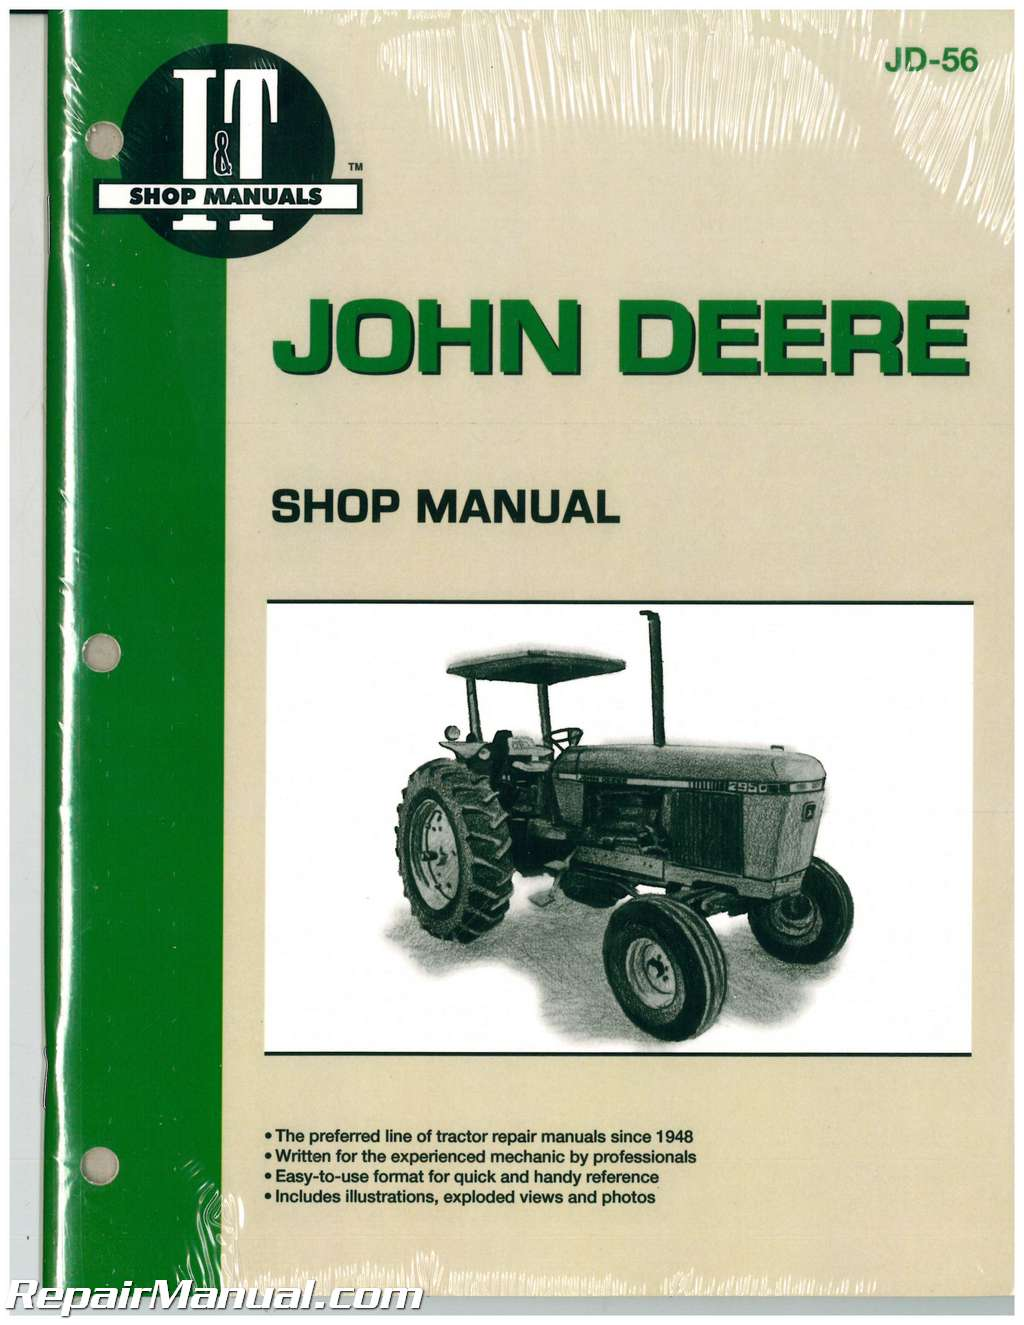 john deere 2840 2940 2950 tractor workshop manual repair manuals john deere 2840 2940 2950 tractor workshop manual 001